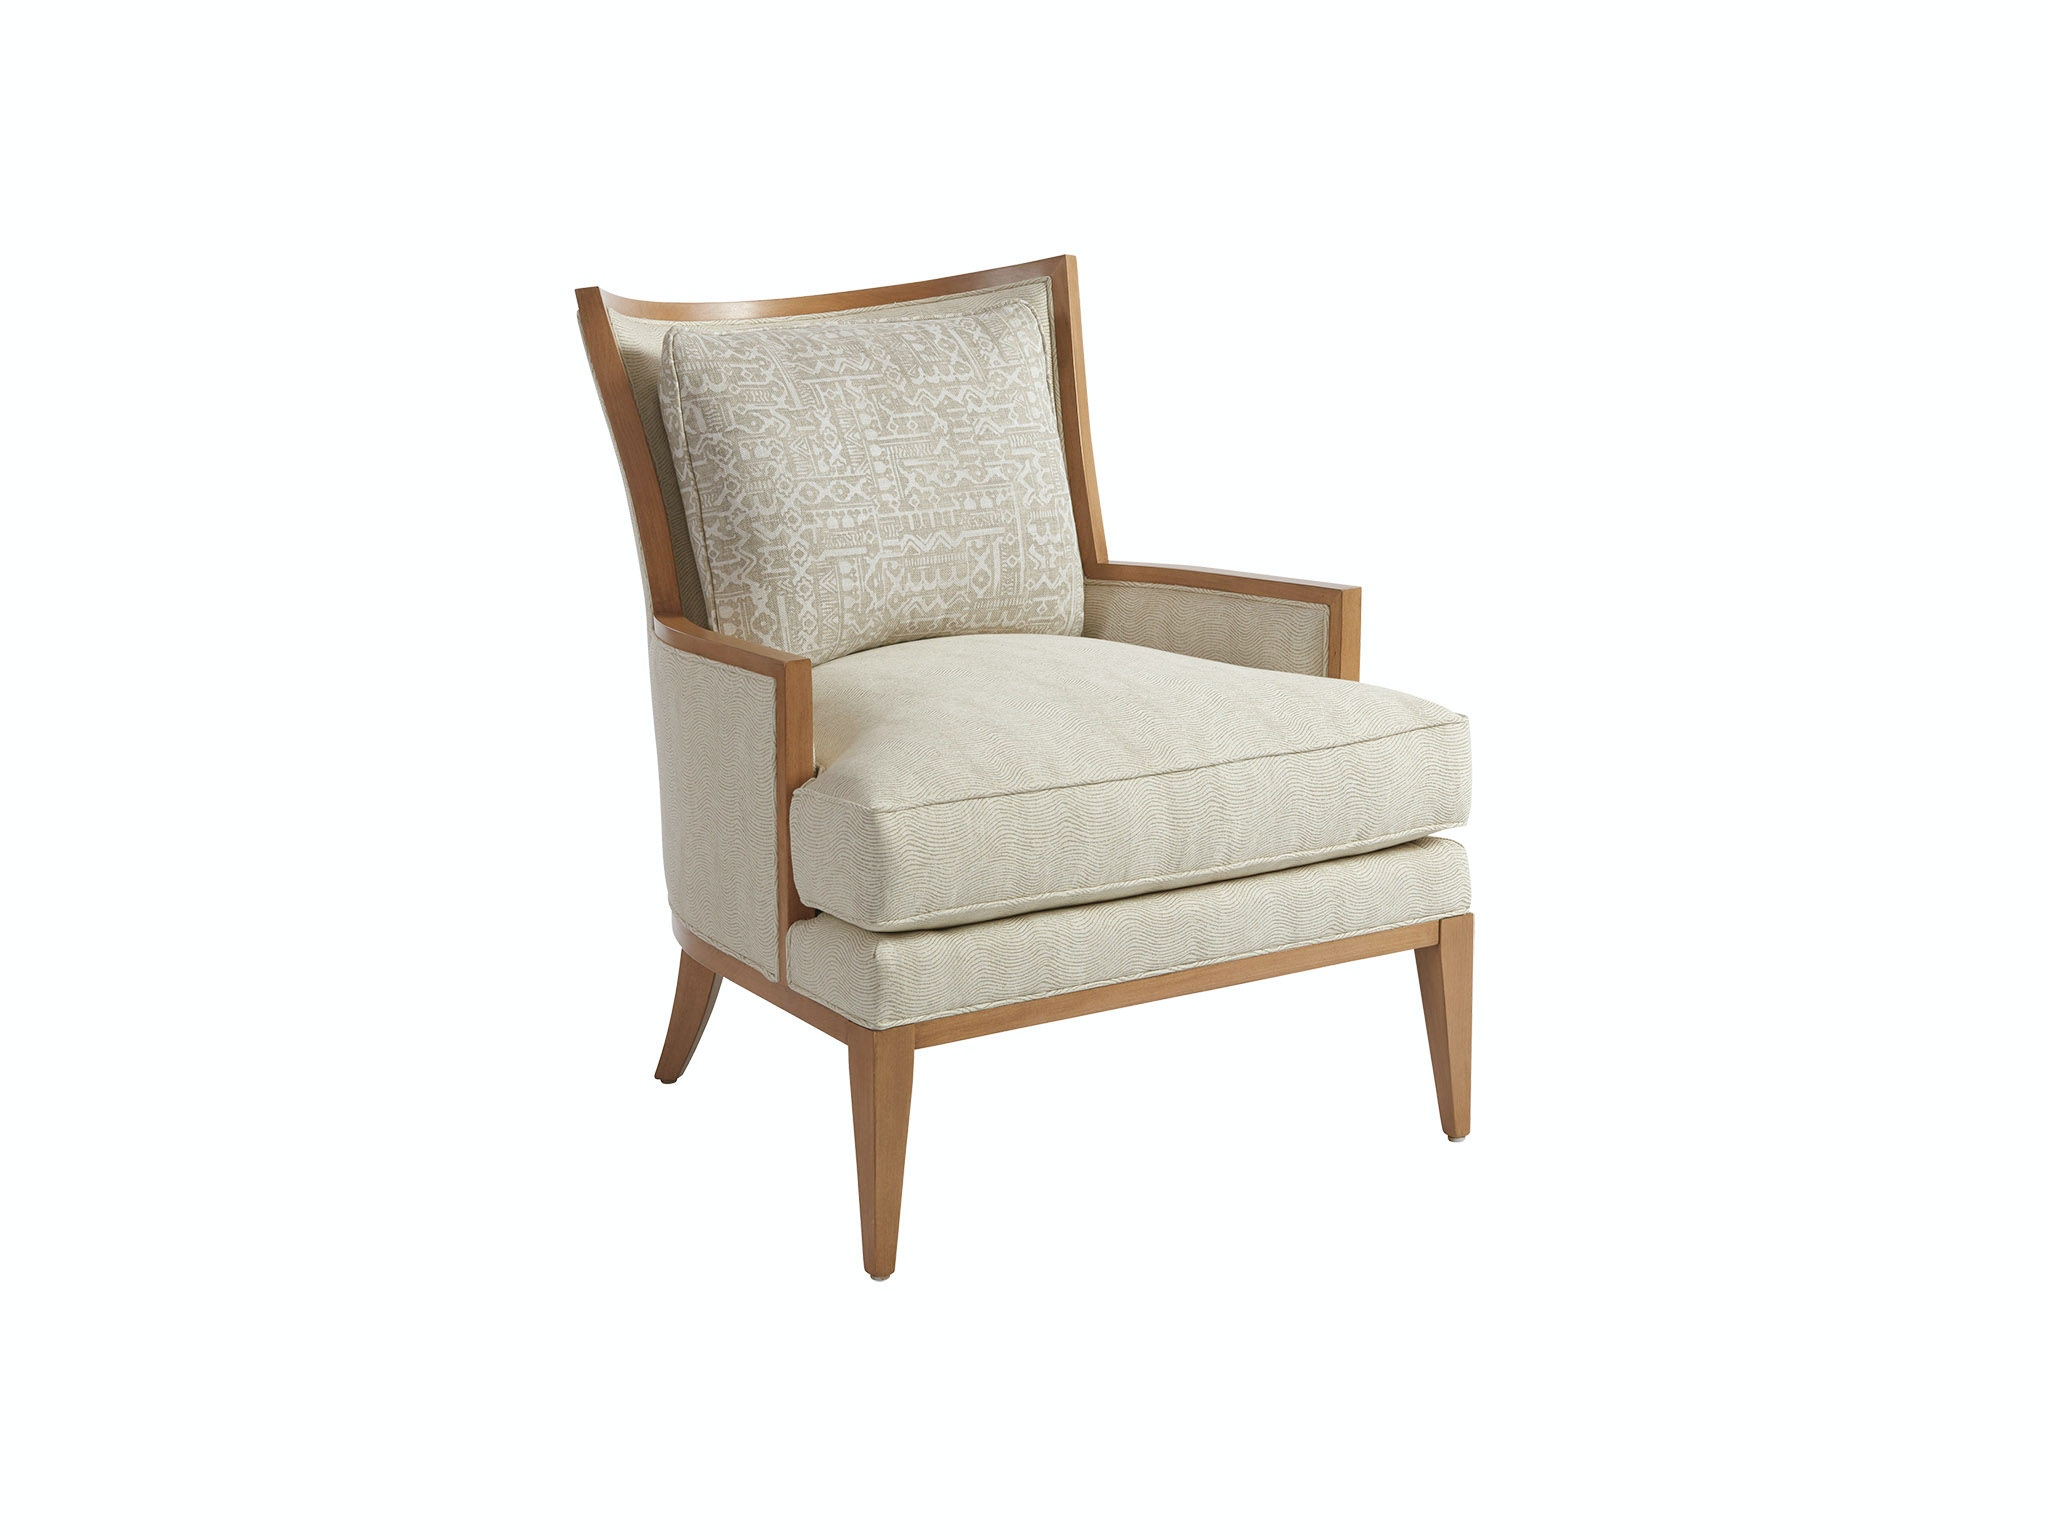 Incroyable Barclay Butera By Lexington Atwood Chair 5340 11